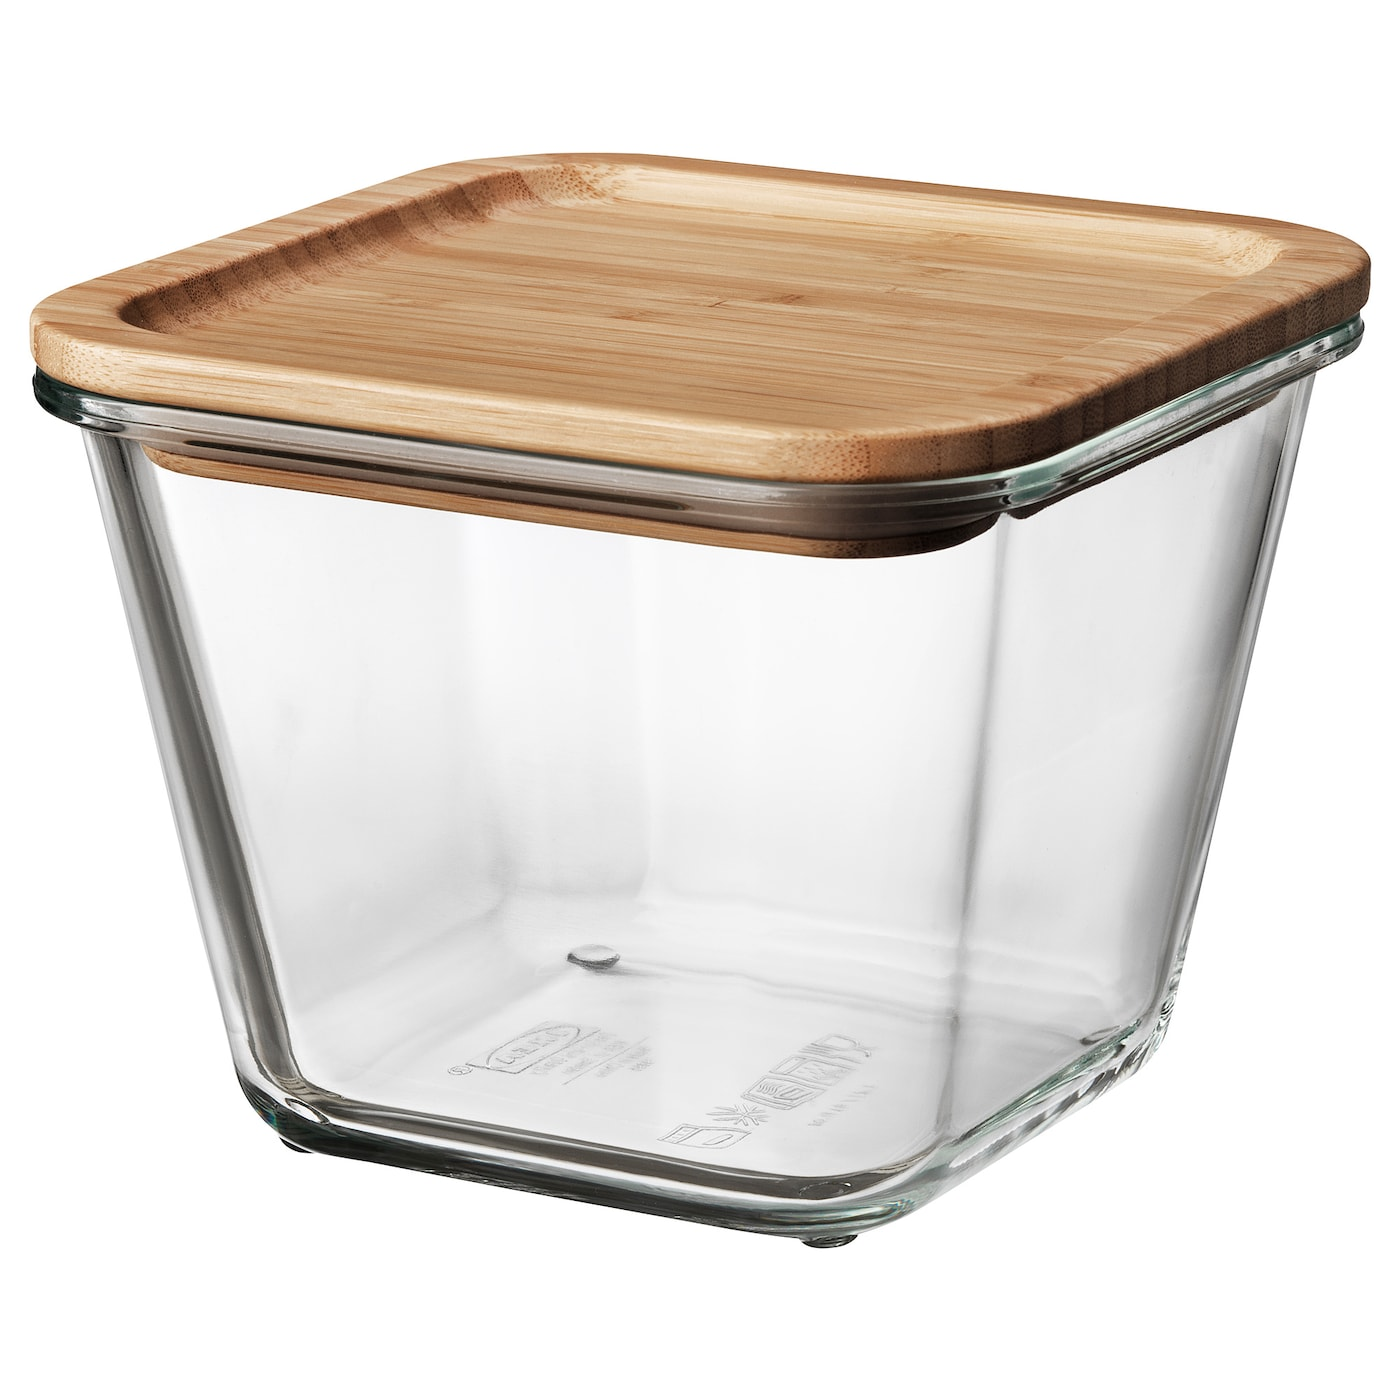 IKEA 365 Food Container With Lid The Natural Bamboo Creates A Warm And Vibrant